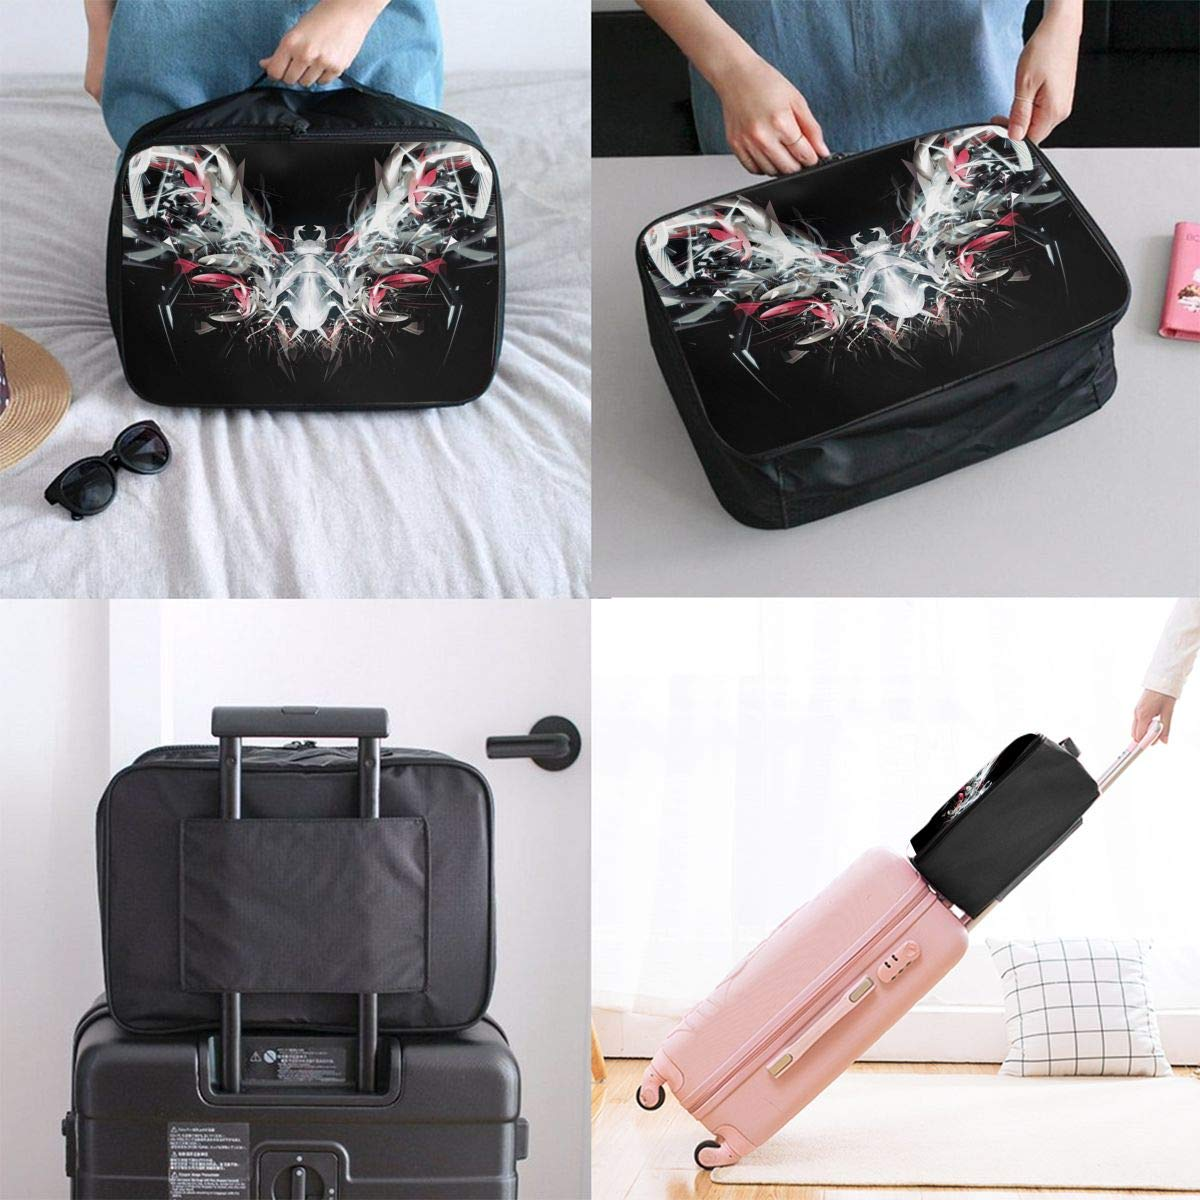 Travel Luggage Duffle Bag Lightweight Portable Handbag Abstract Cool Design Pattern Large Capacity Waterproof Foldable Storage Tote